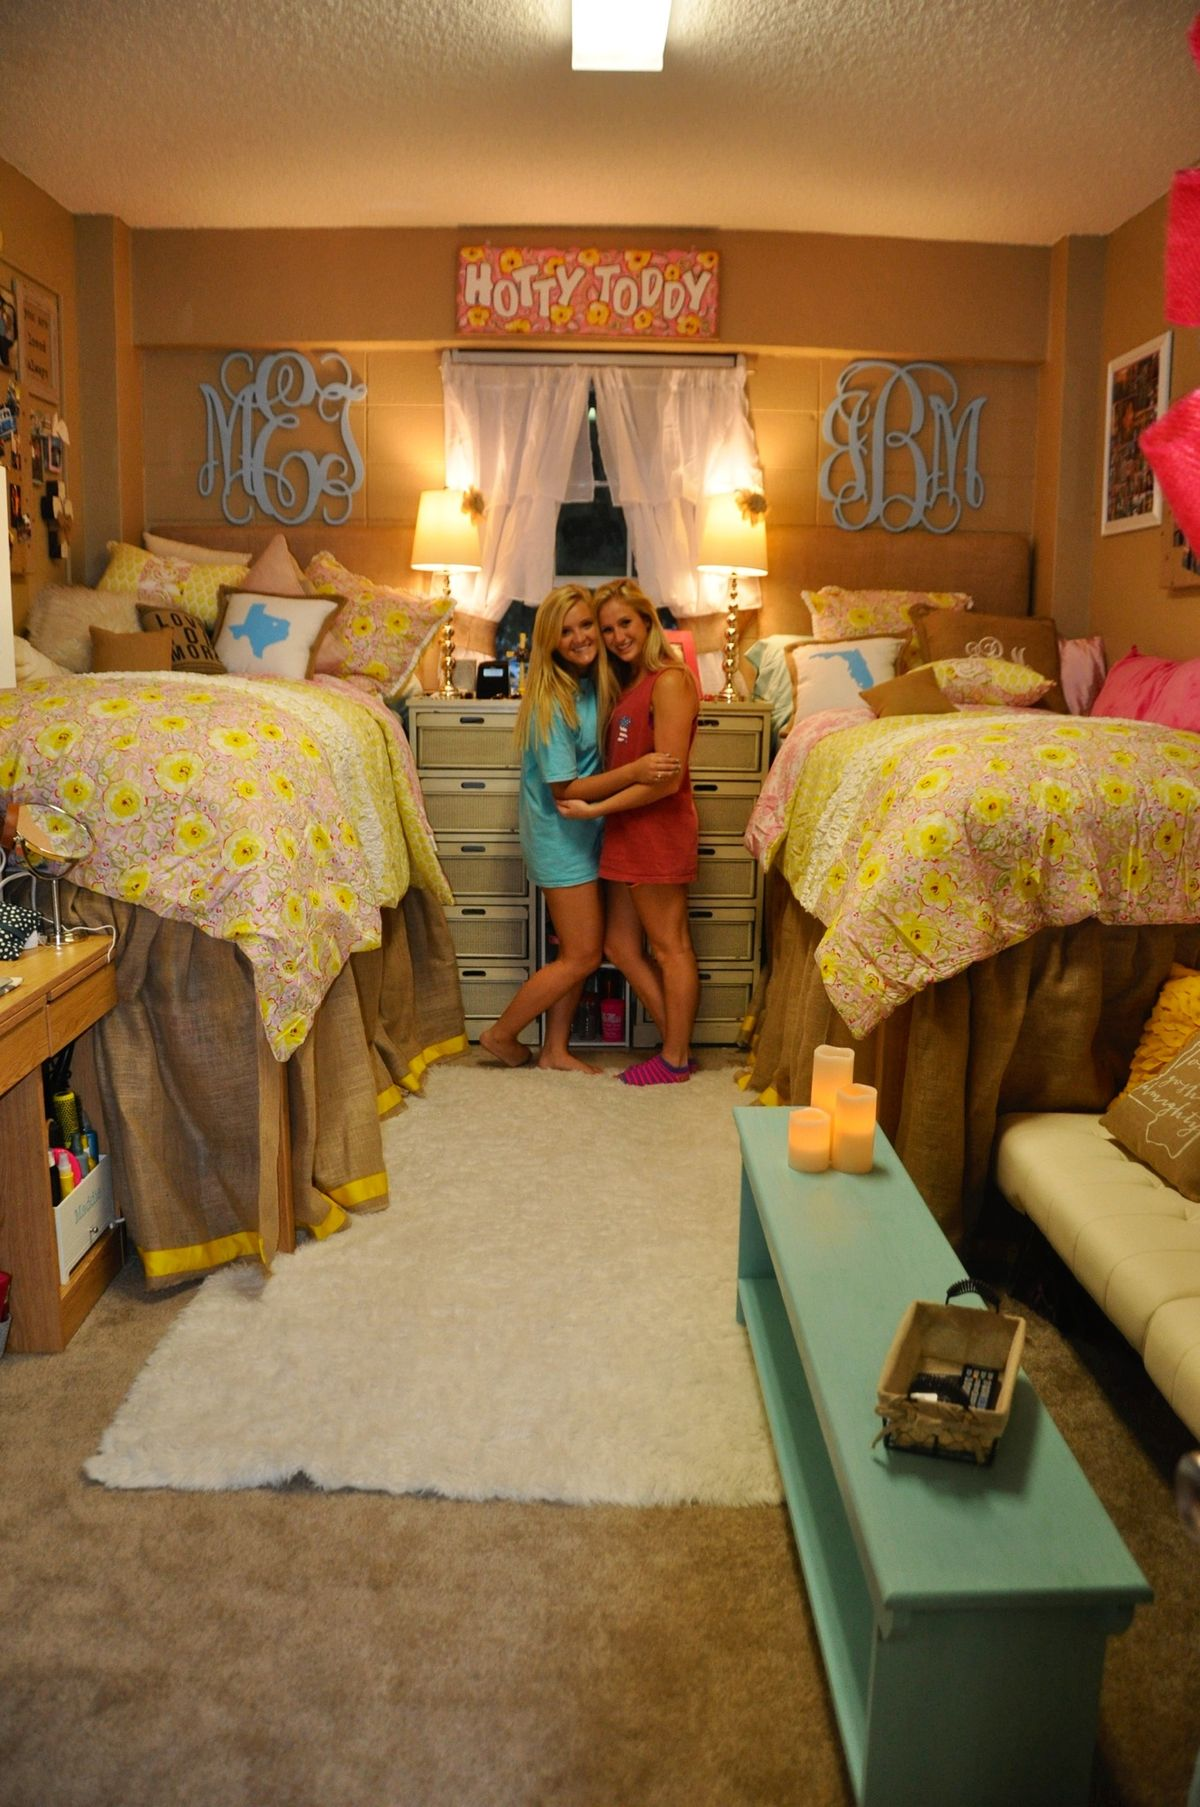 1d82181f9aeaafe4d6a8d7f659ac7b4a 1,200×1,807 Pixels   Dorm Room    Pinterest   Dorm, Dorm Room And College